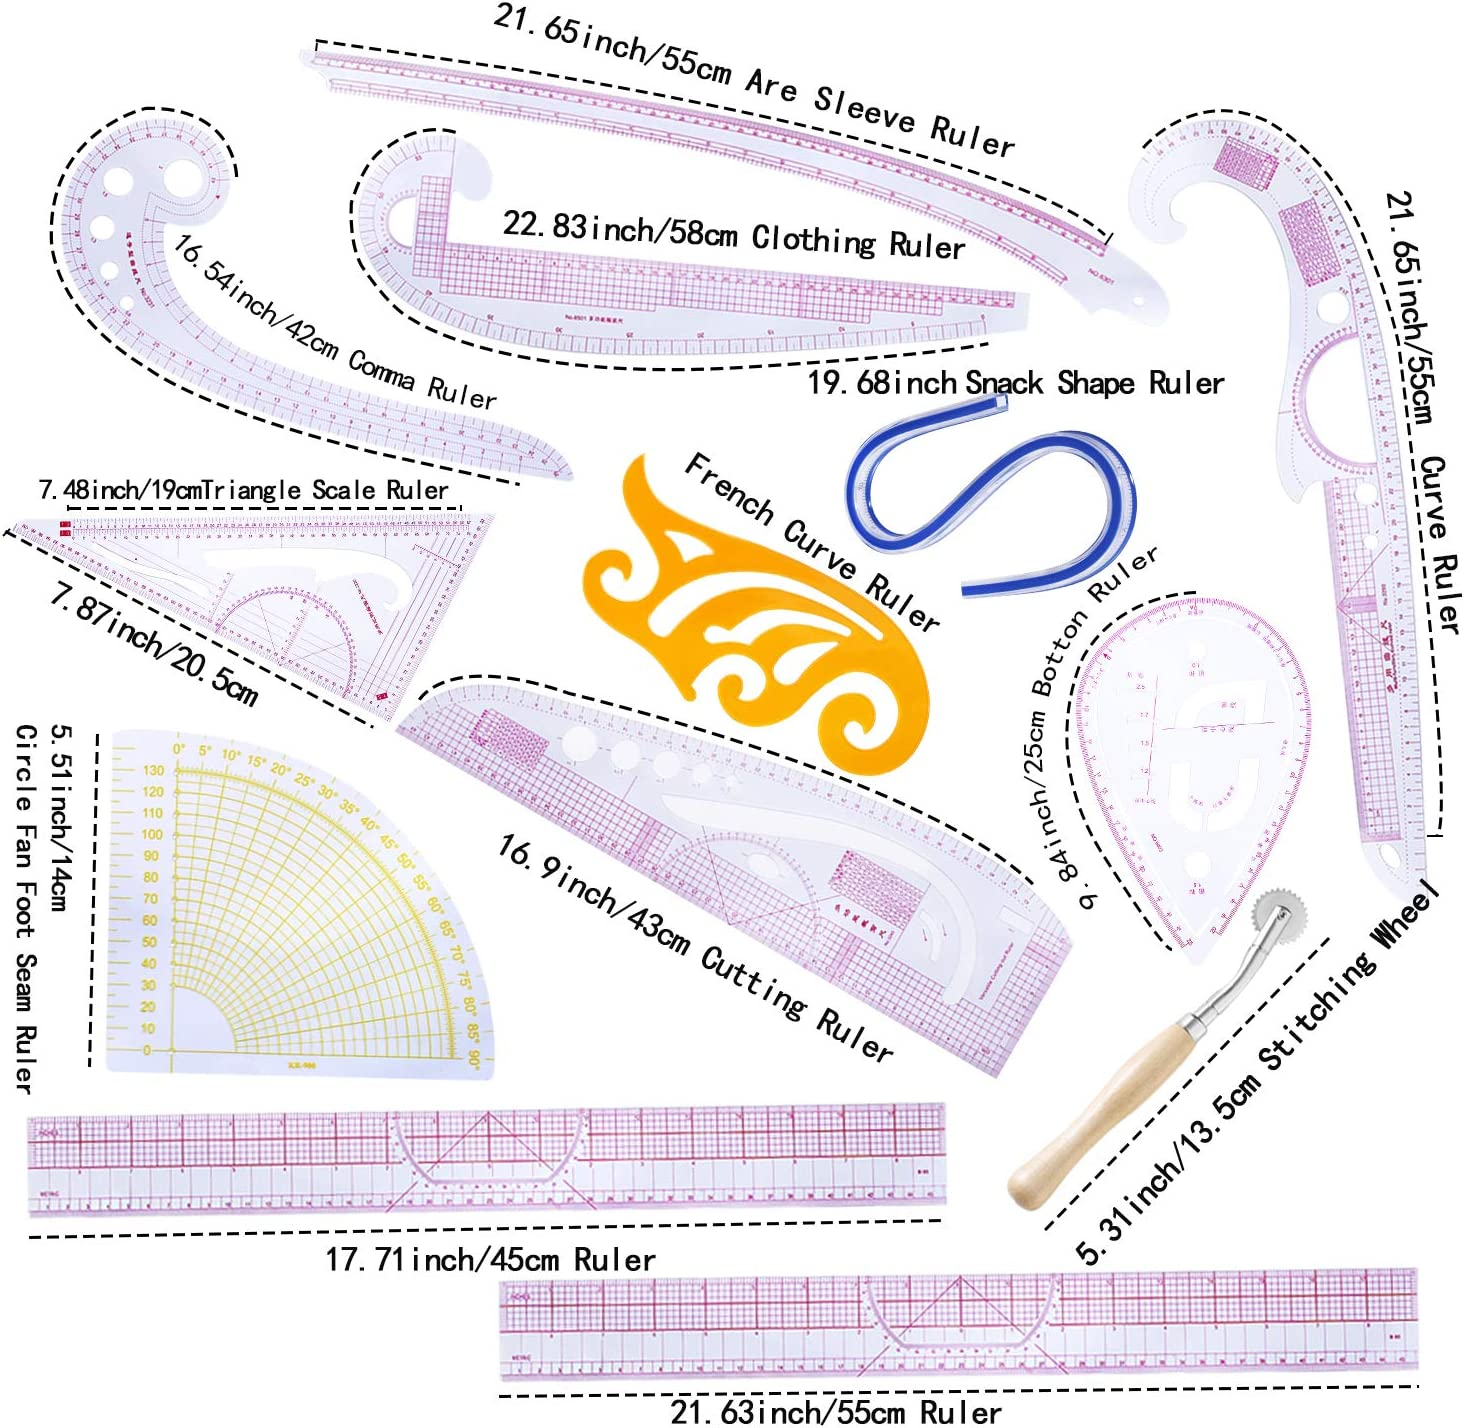 Practical 3 in 1 Plastic Curve Metric Ruler Craft Sewing Tool Measure for Tailor Grading Rule Pattern Making Styling Design